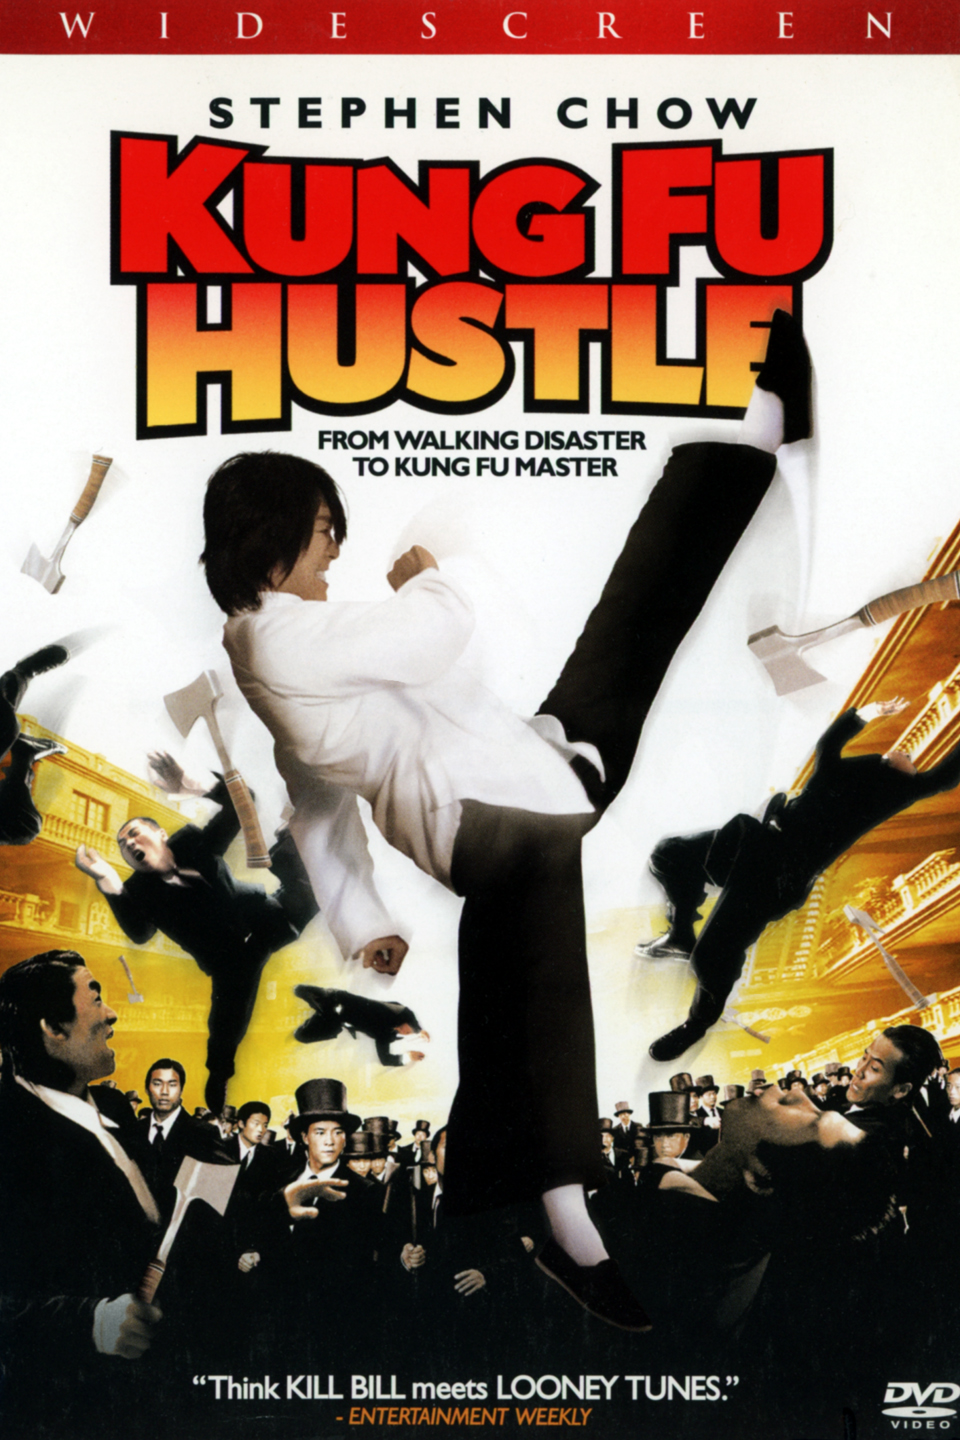 an analysis of stephen chows movie kung fu hustle Kung fu hustle, set in shanghai  actors: danny chan, yuen wah, yuen qiu, eva huang, stephen chow you can enjoy all functions of our site and watch movies best.